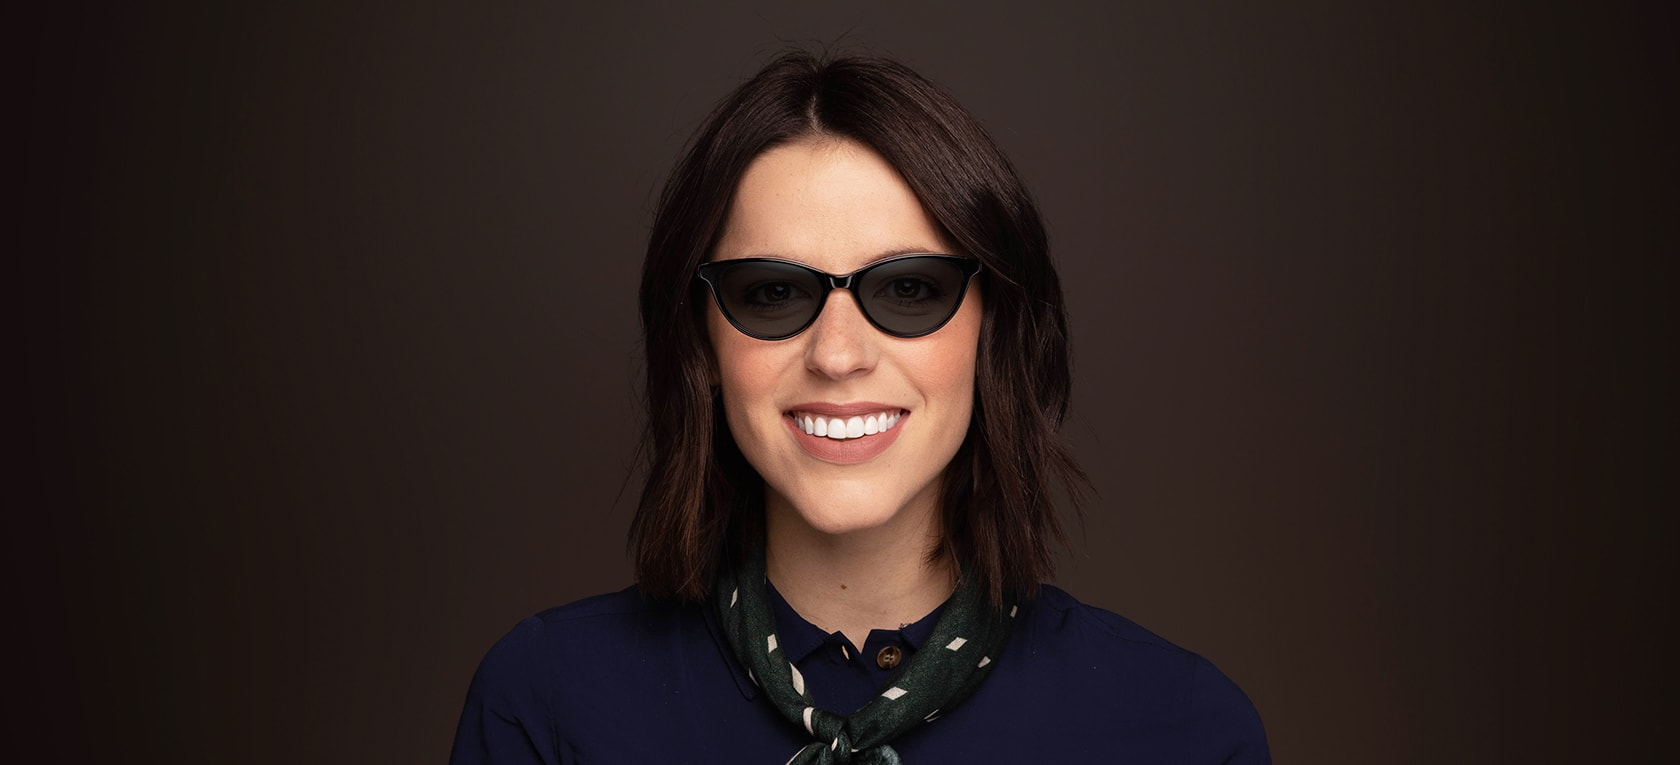 Image of model wearing Verona frames